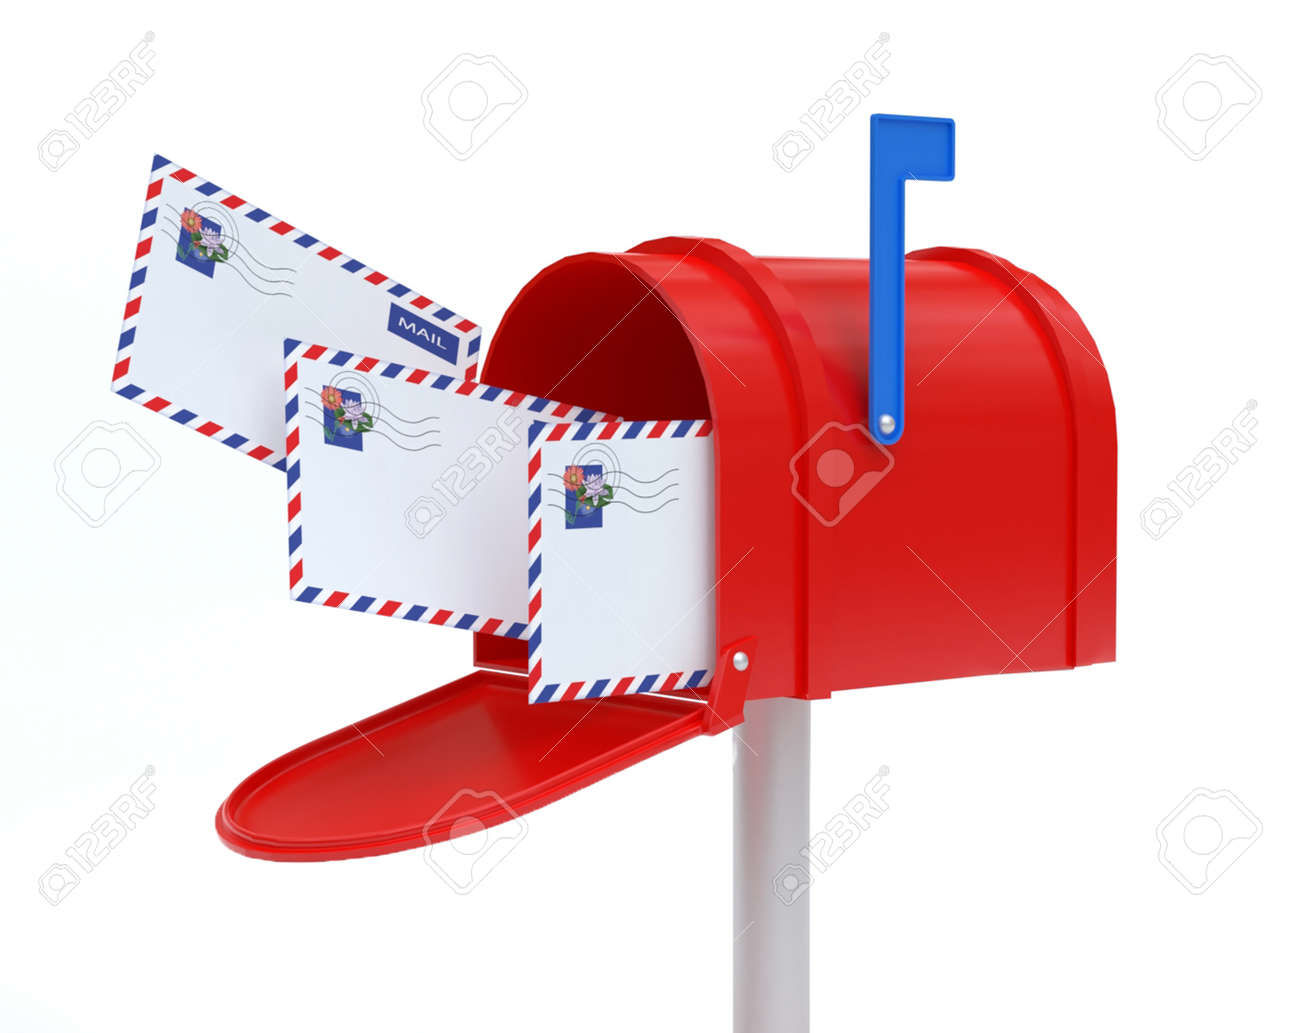 Mail Box with mail - 165842598